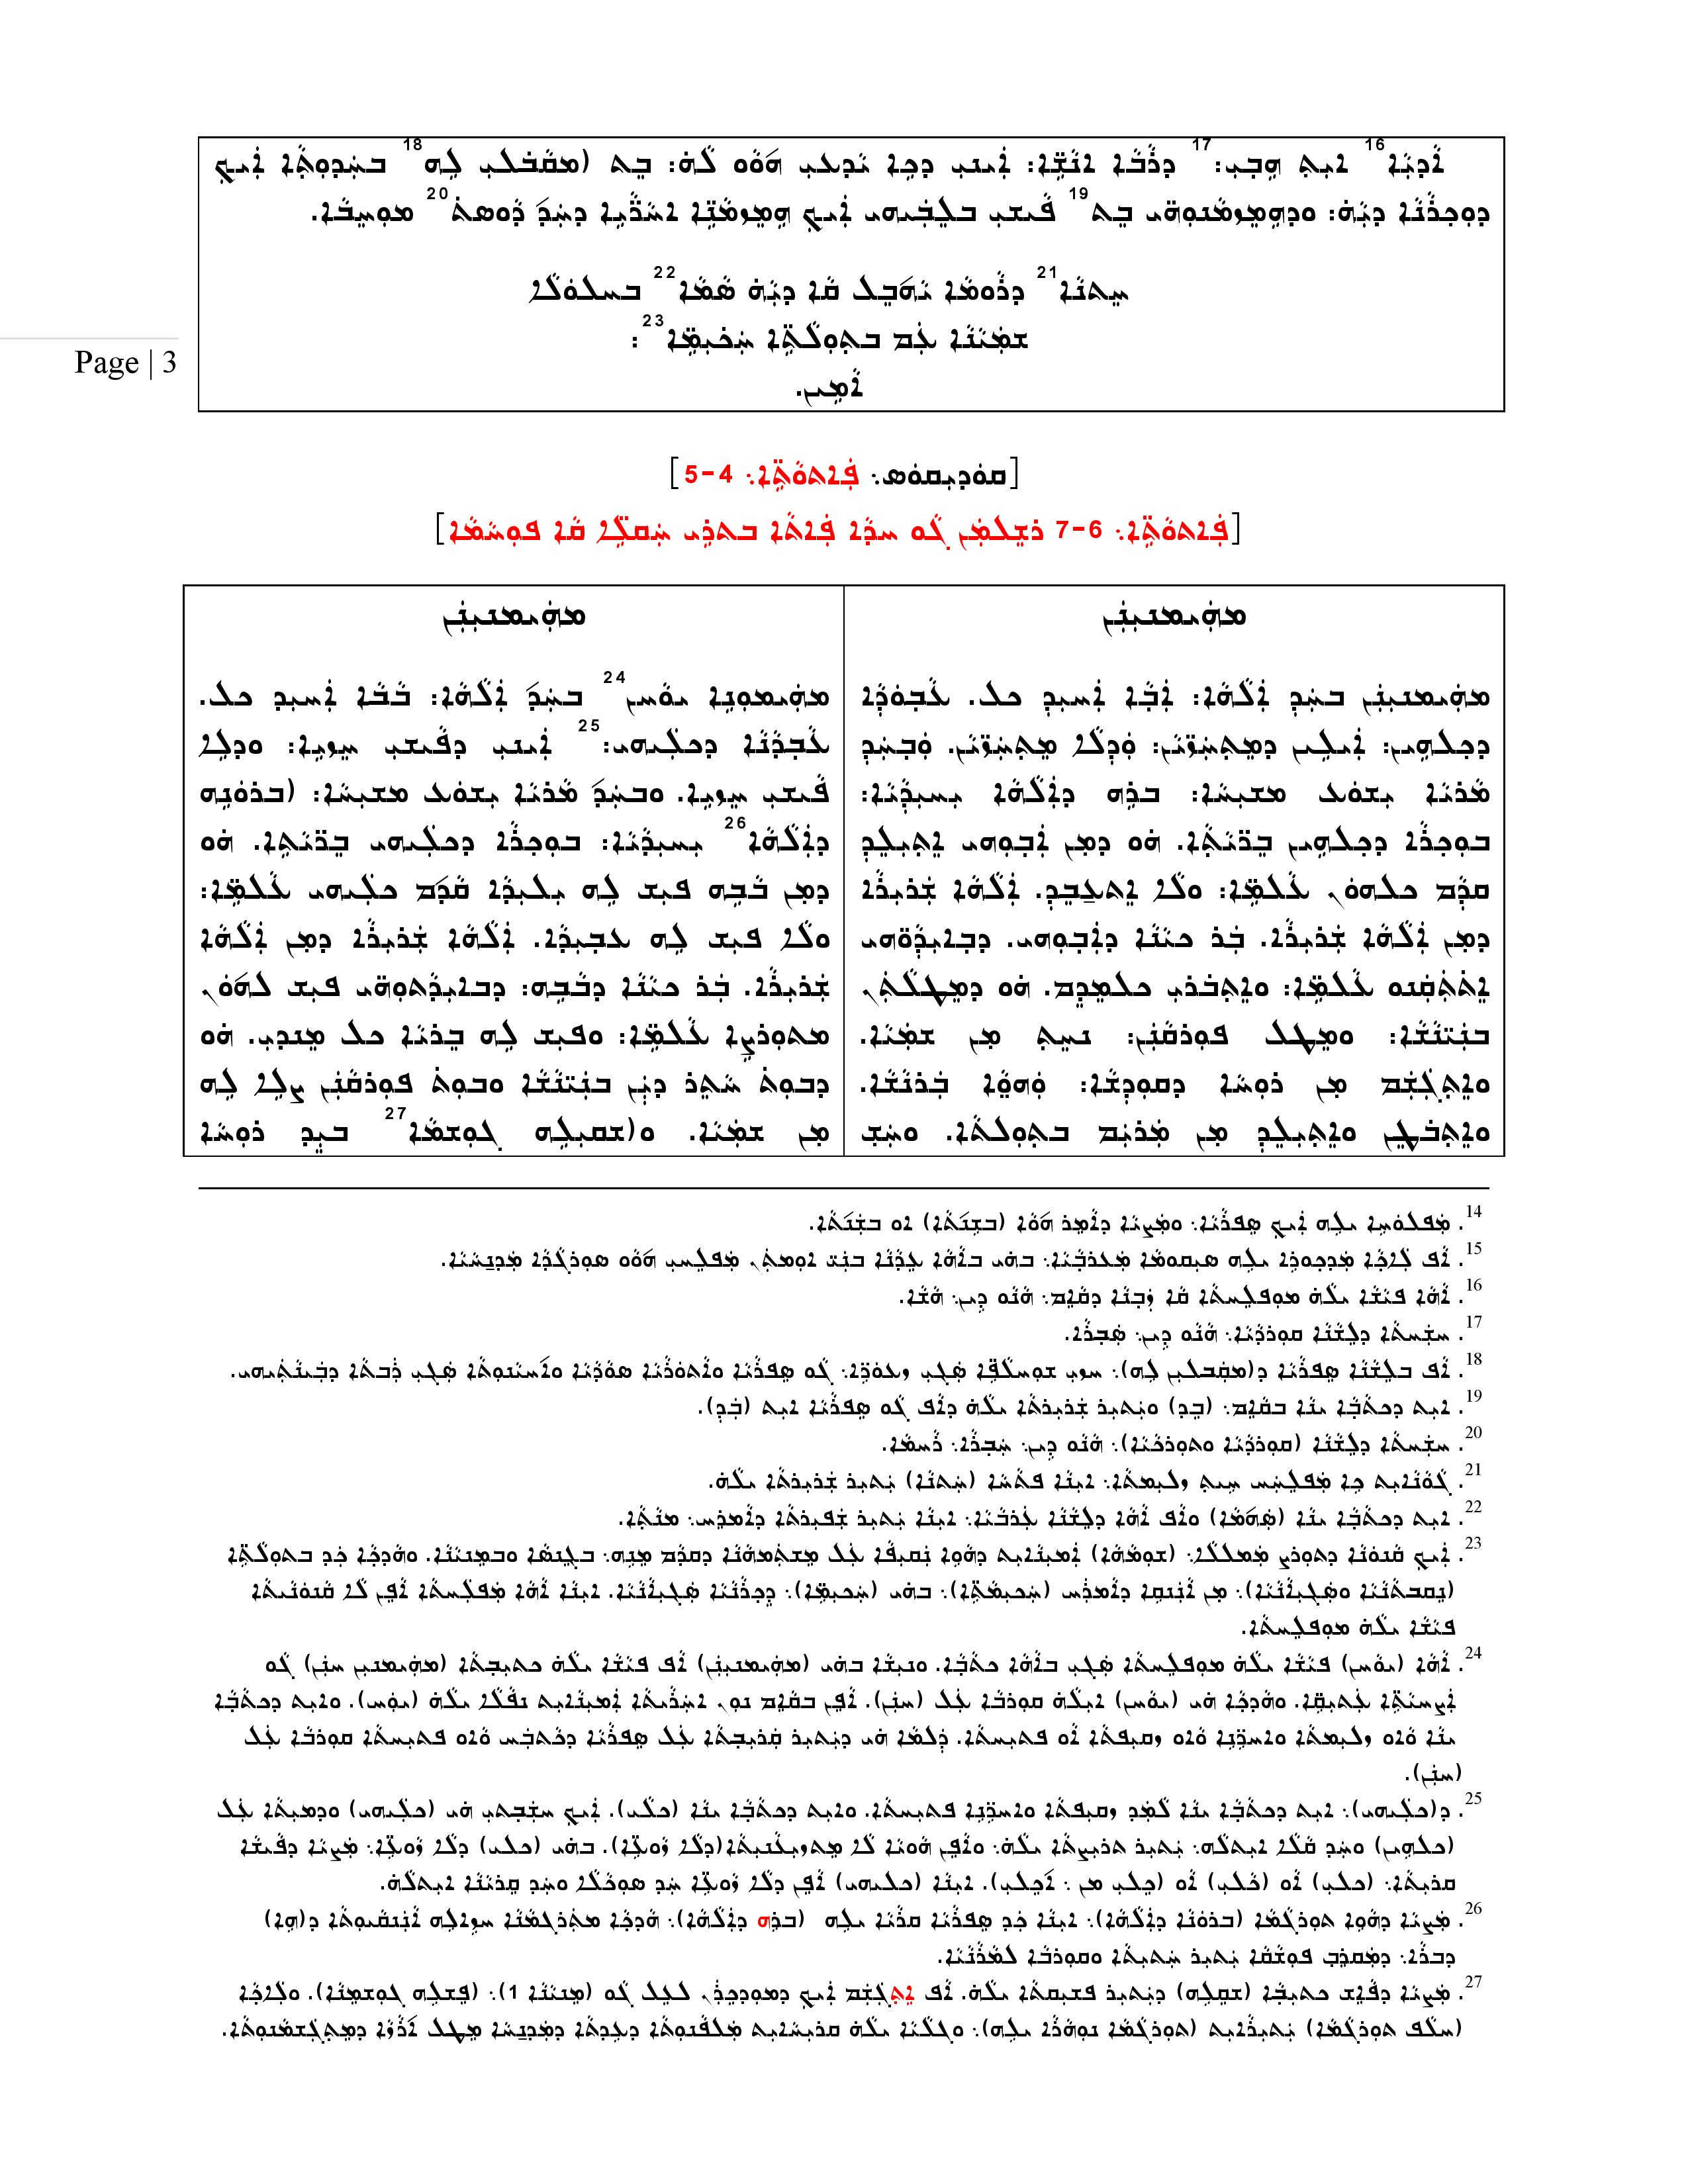 16-07-30-page-003